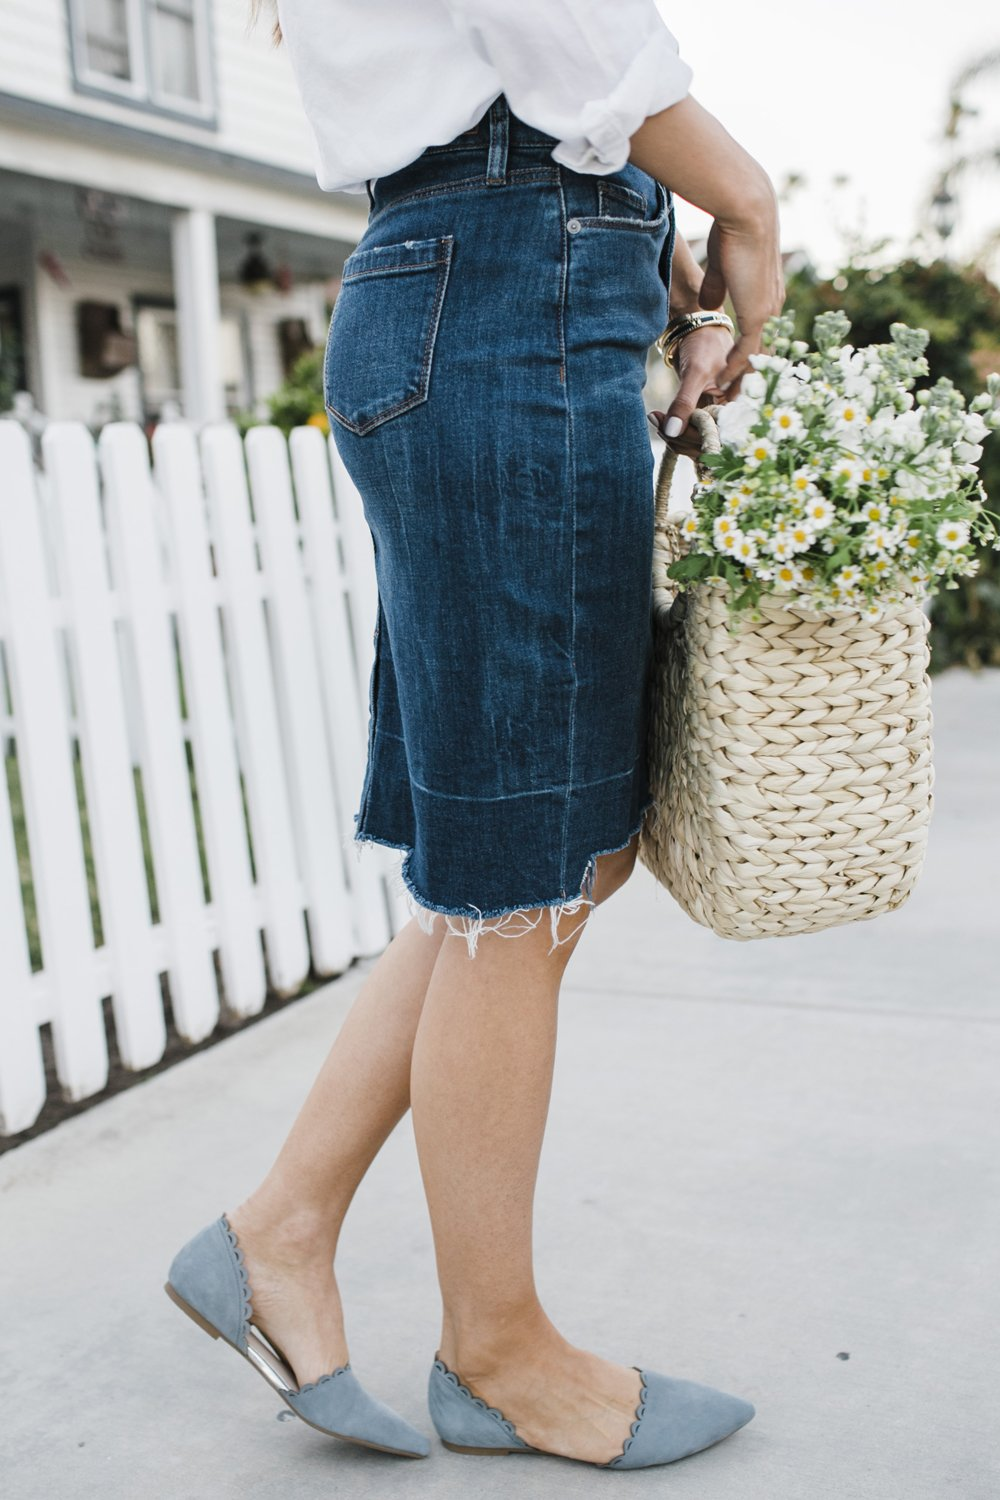 Merrick's Art | BlankNYC Denim Skirt